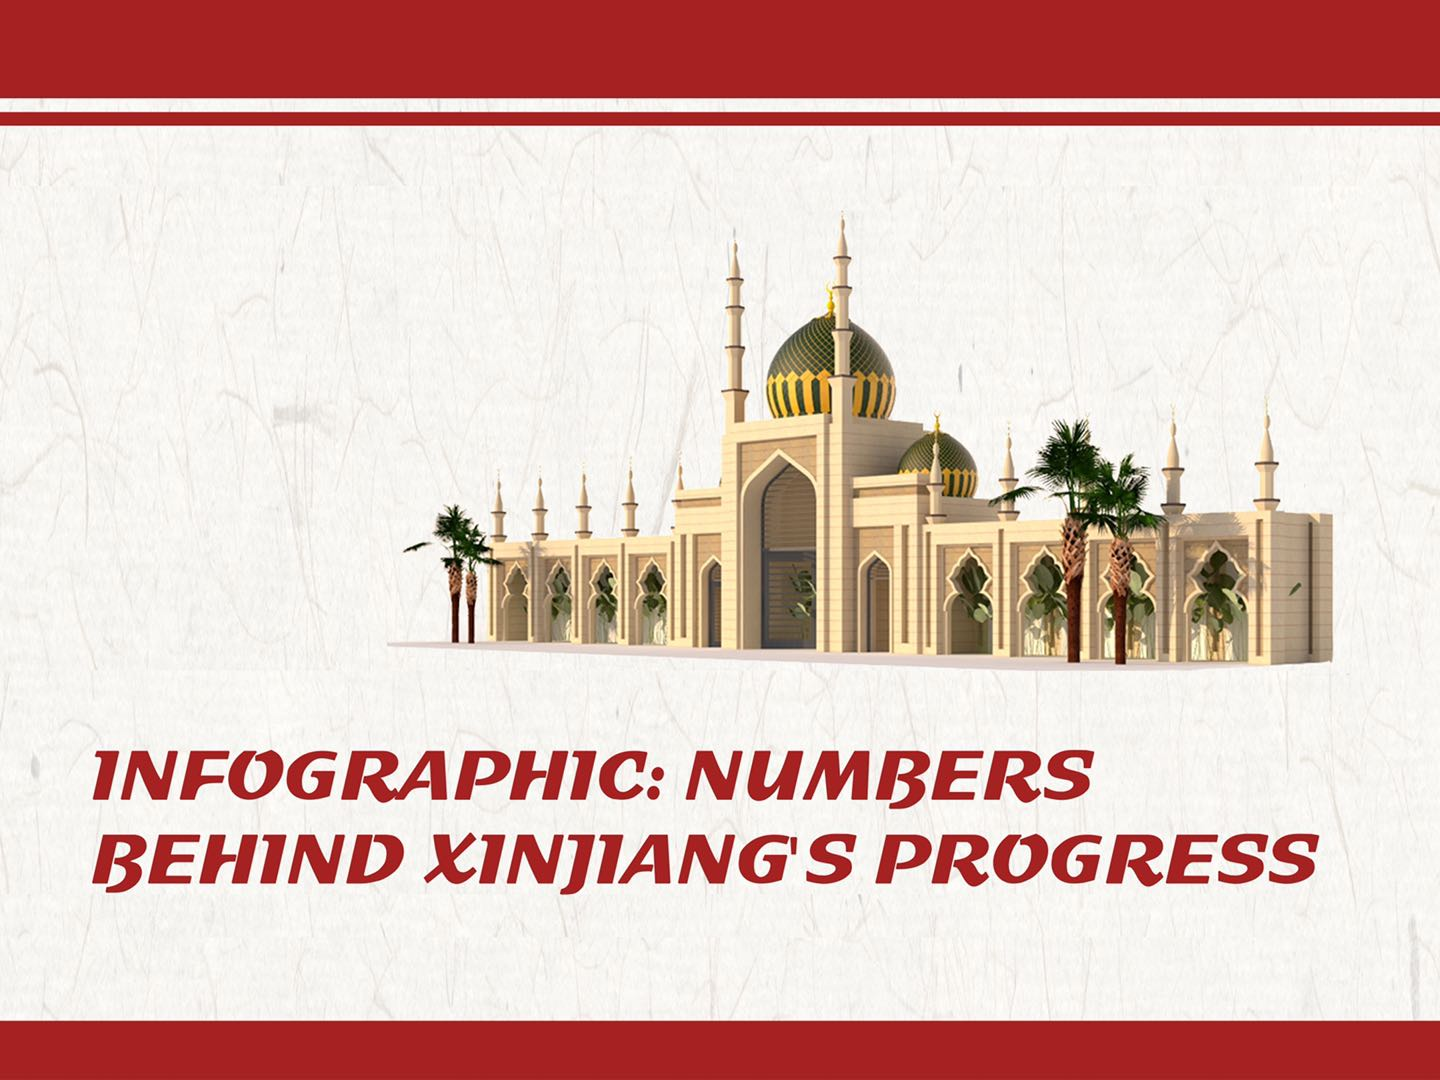 Infographic: Numbers behind Xinjiang's progress